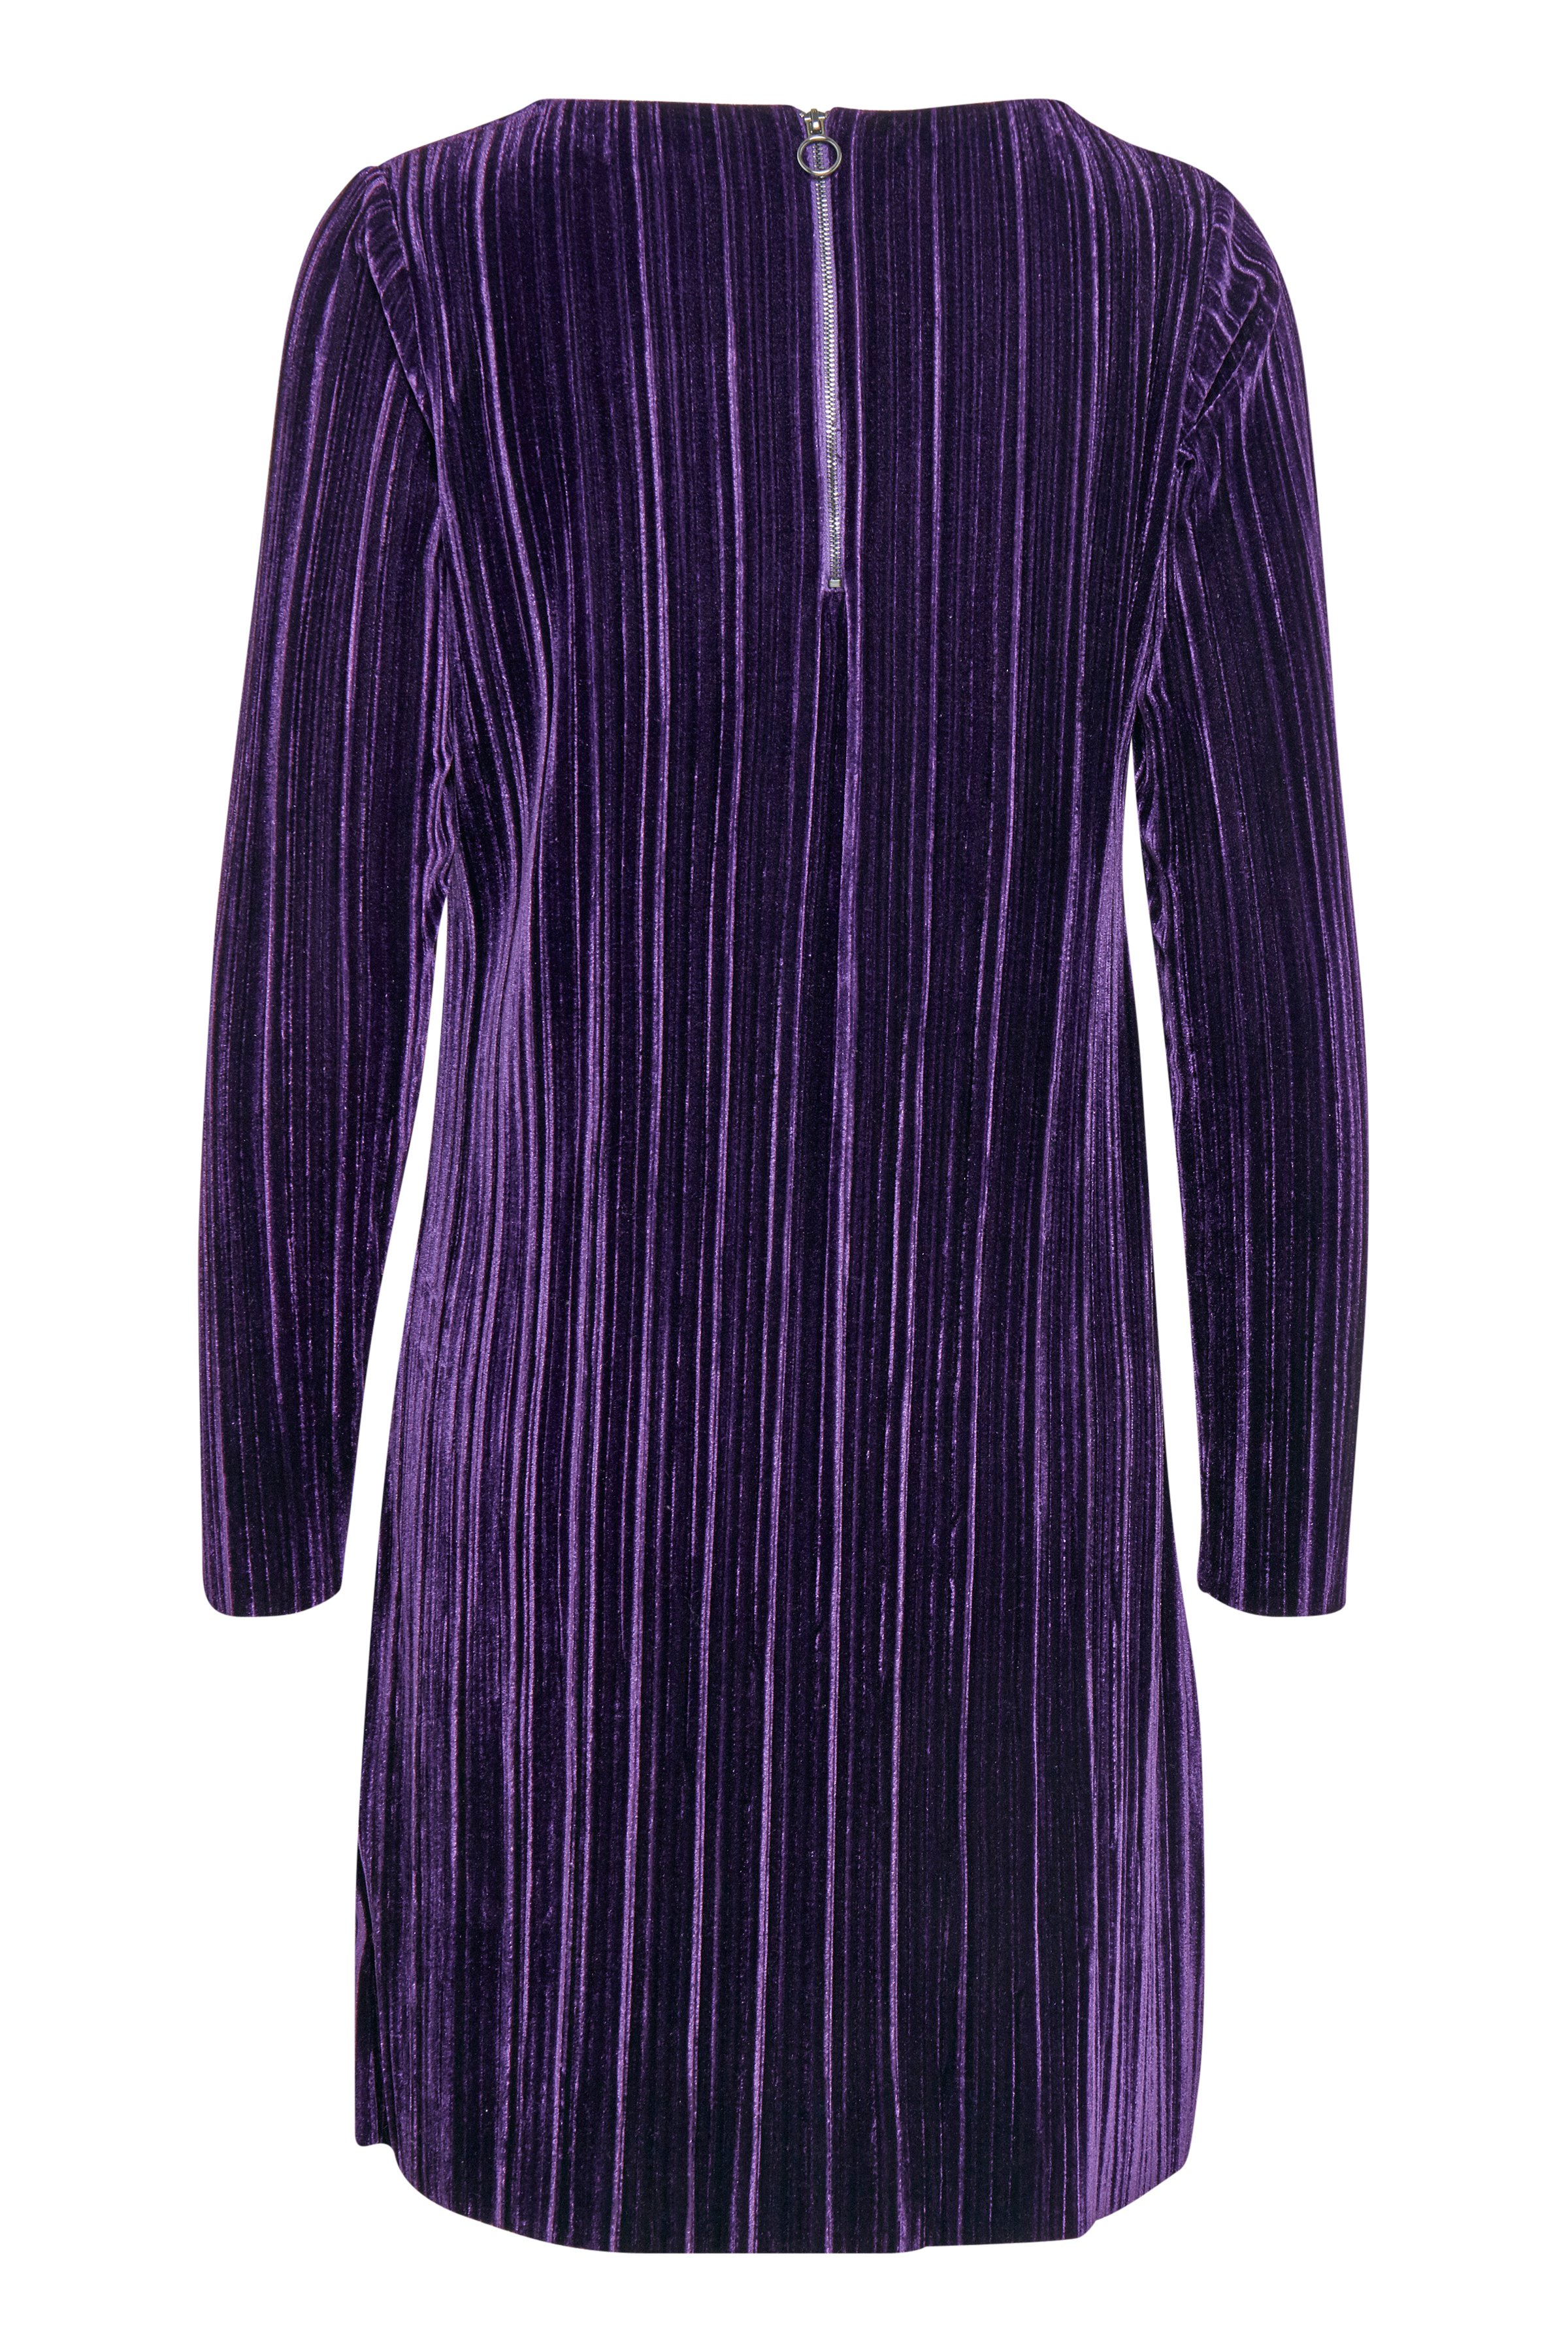 Blackberry Purple Dress from b.young – Buy Blackberry Purple Dress from size XS-XXL here